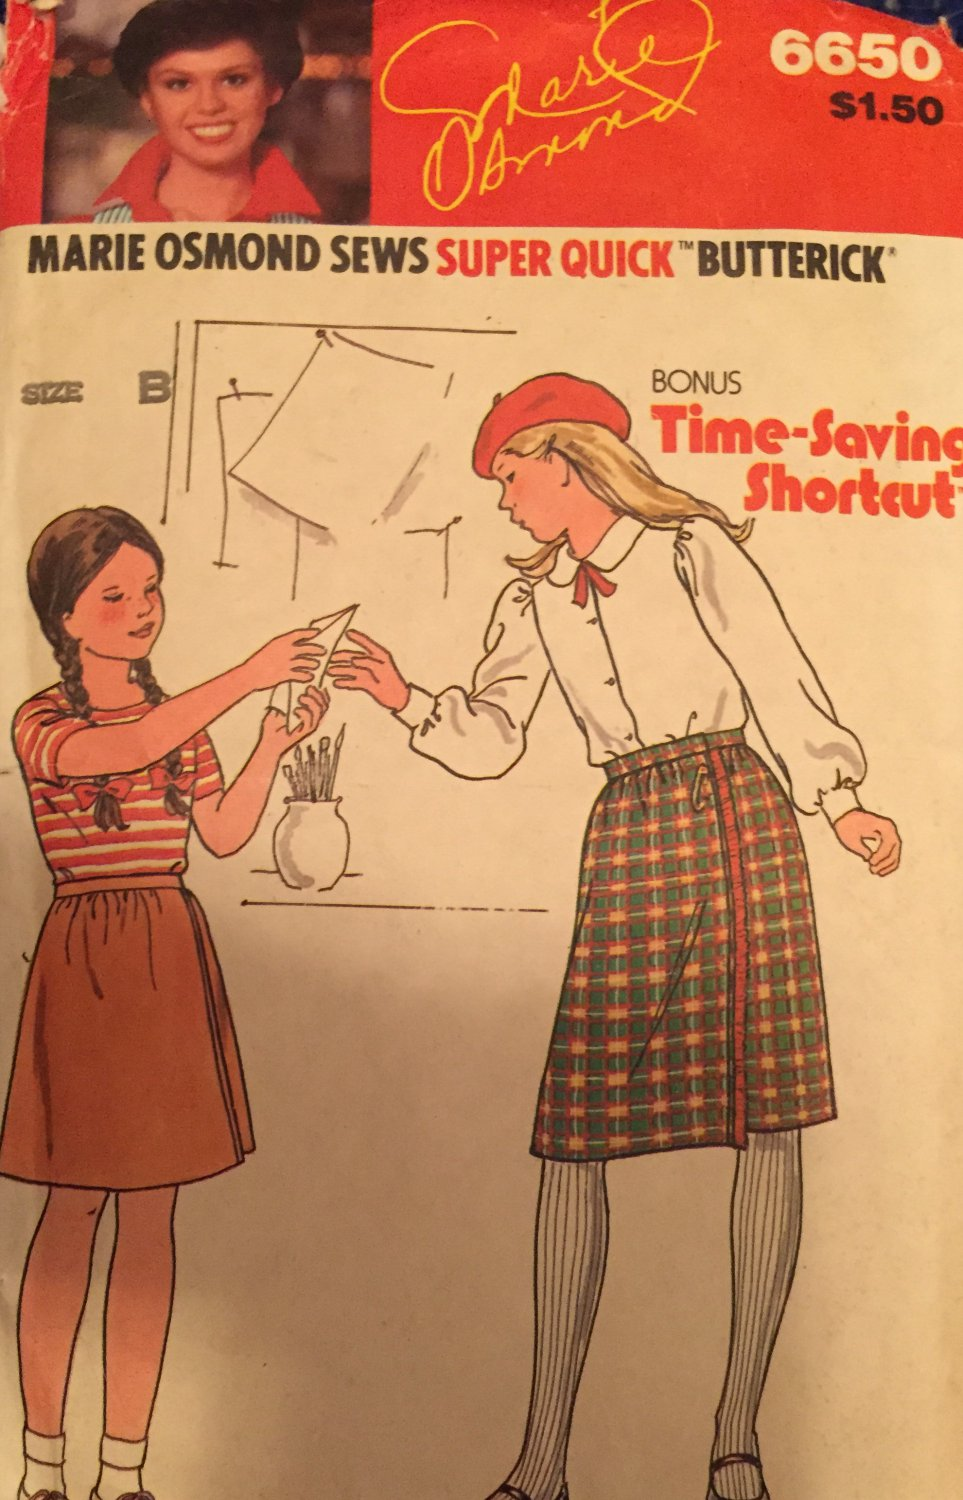 Butterick 6650 Girls Dirndl Wrap Skirt Sewing Pattern Size 8 - 12  Marie Osmond Vintage 70s